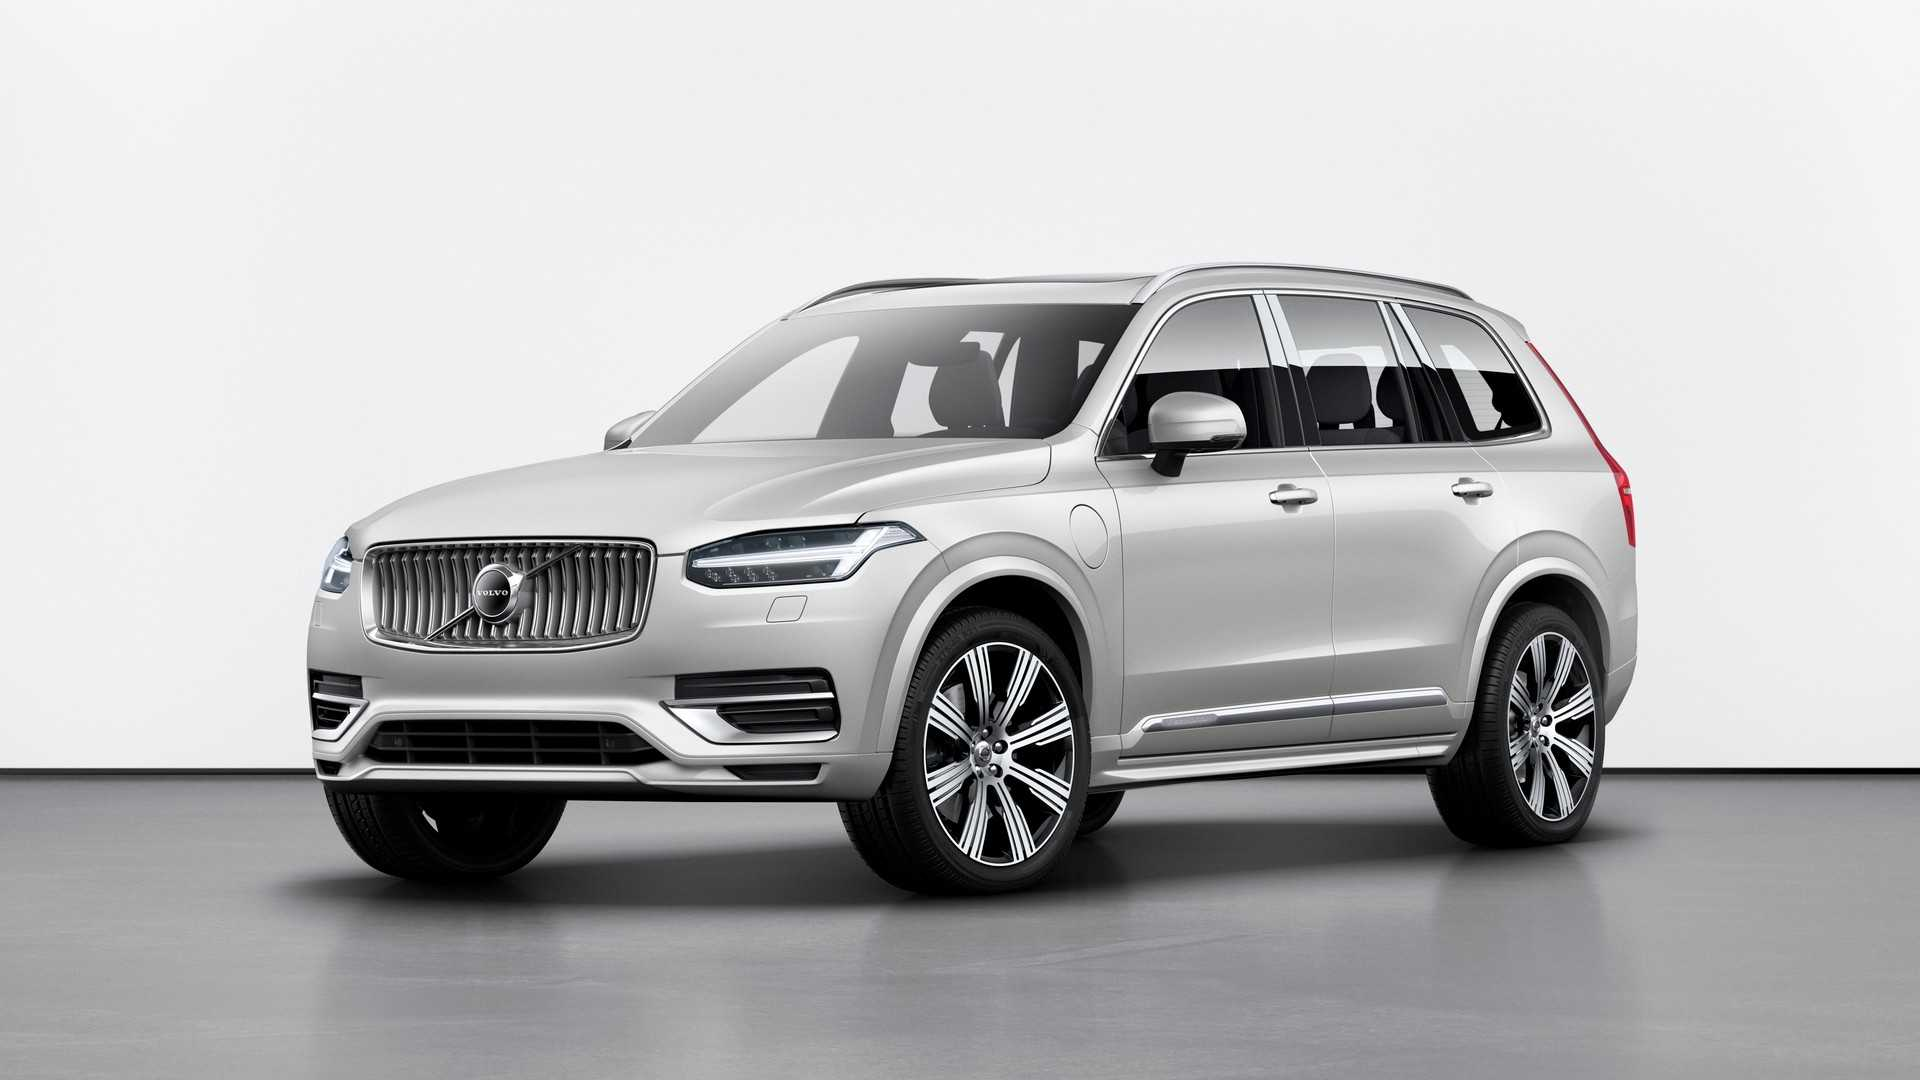 90 New Volvo Xc90 Facelift 2019 Reviews